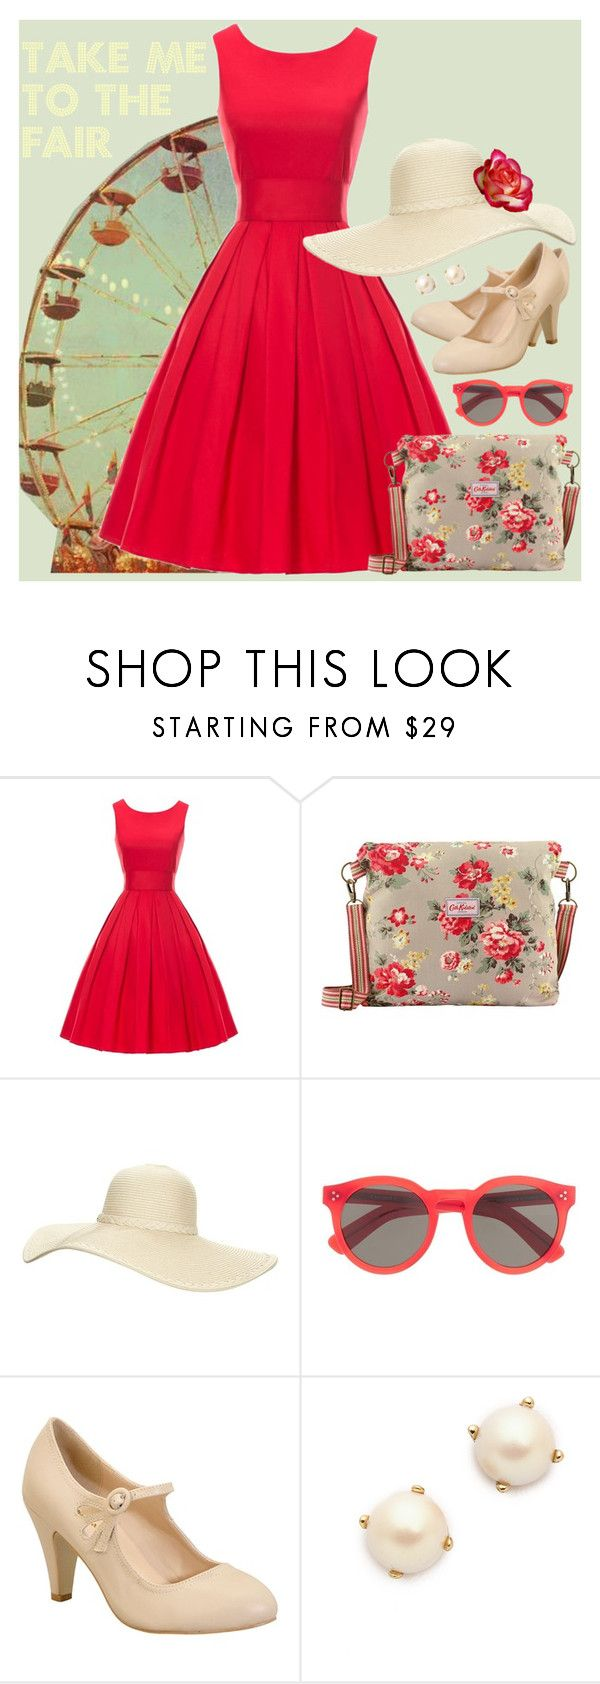 """""""Take Me to the Fair"""" by rochellechristine ❤ liked on Polyvore featuring Cath Kidston, Reger by Janet Reger, Illesteva, Chase & Chloe, Kate Spade, Summer, Fall and Winter"""